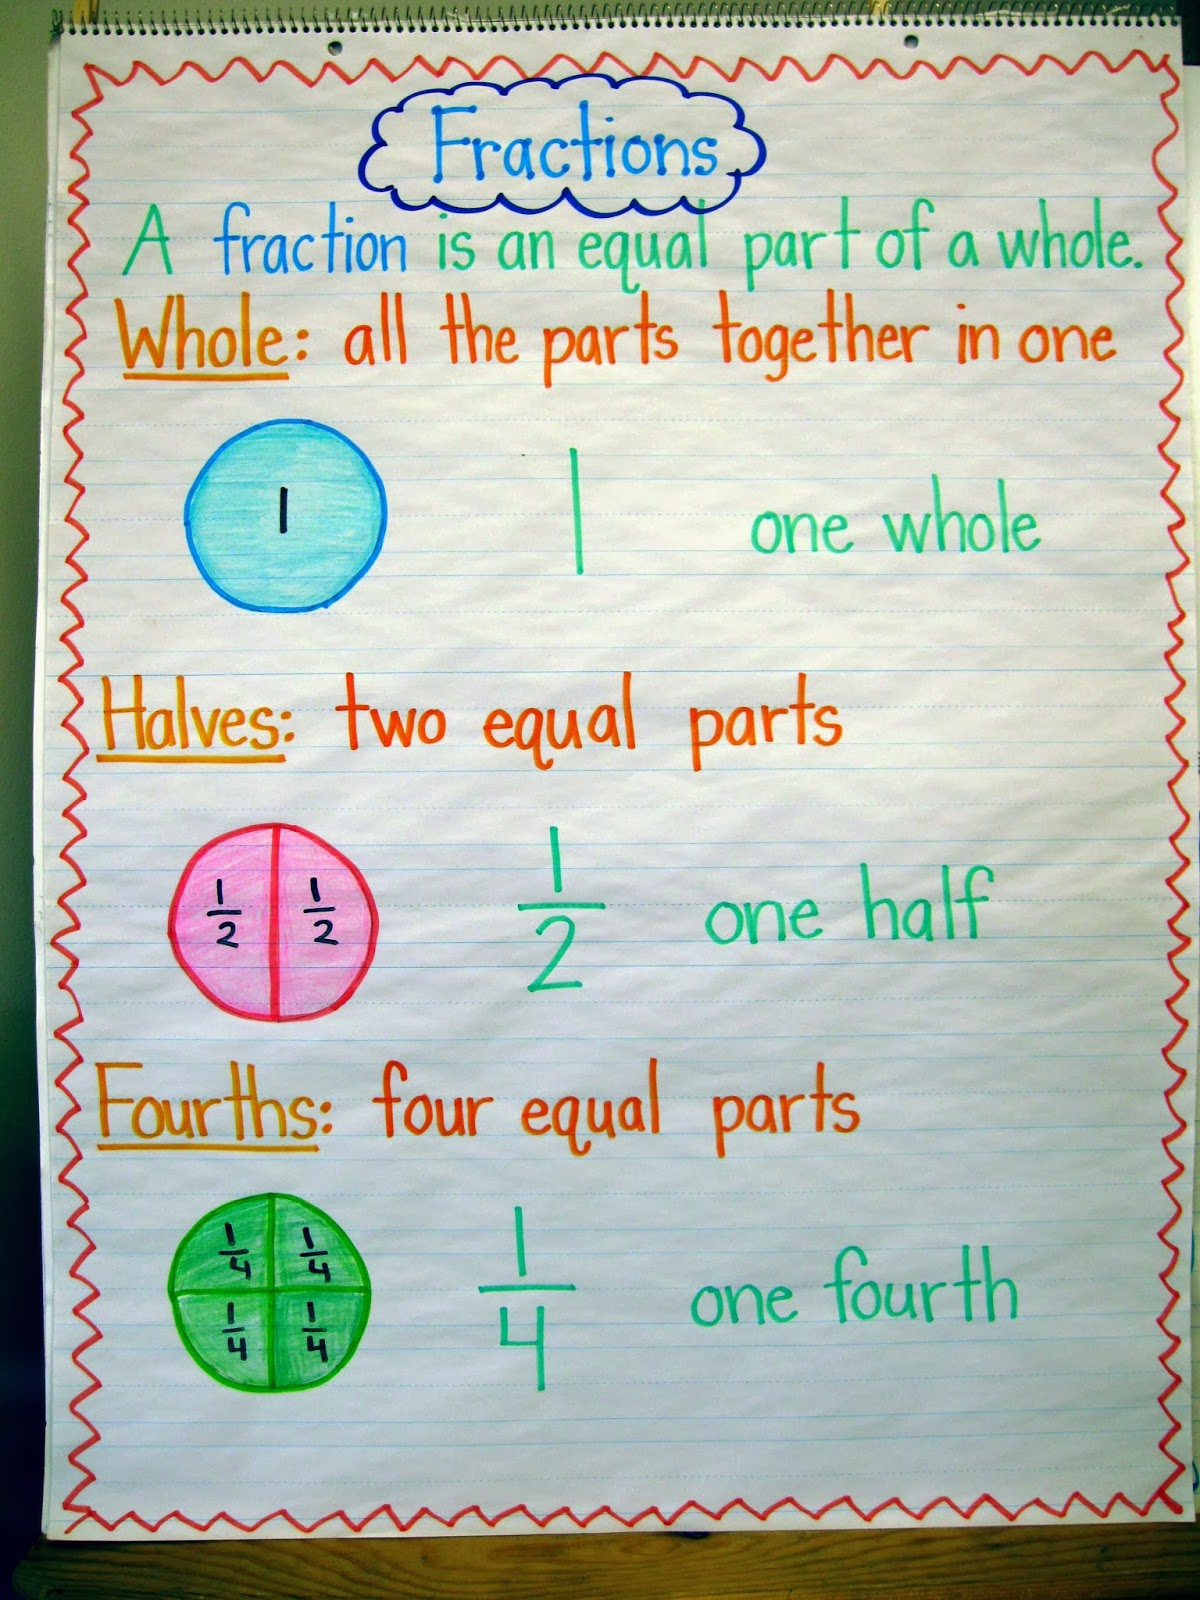 Worksheet First Grade Fractions ship shape first grade pizza fractions i set out giving my students the math task of creating their own to share with three friends this was one ideas found when began